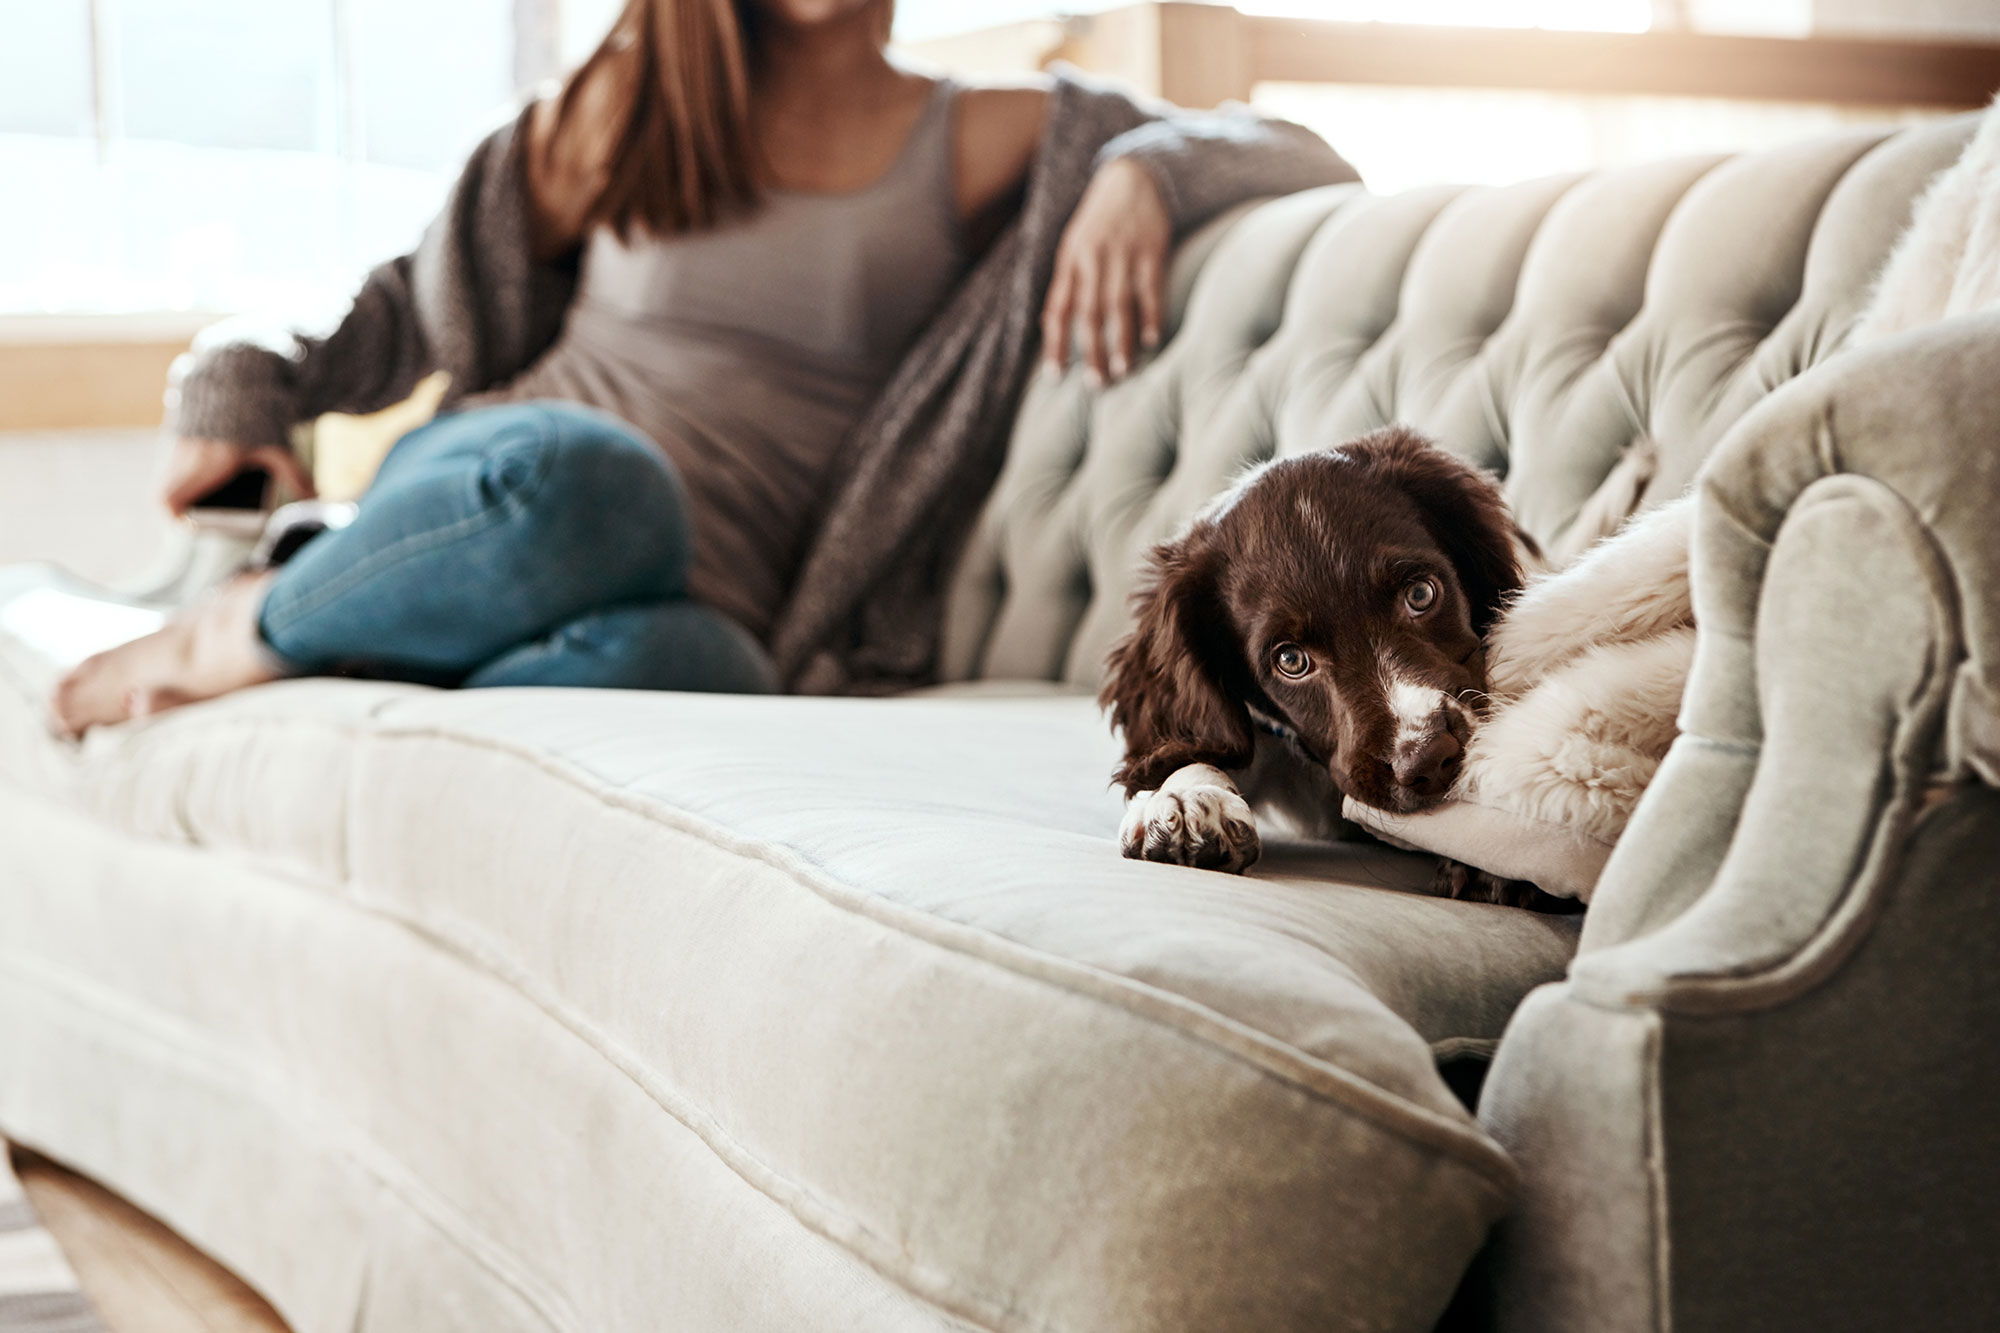 Spaniel puppy playing with a pillow on a couch at home with female owner in the background